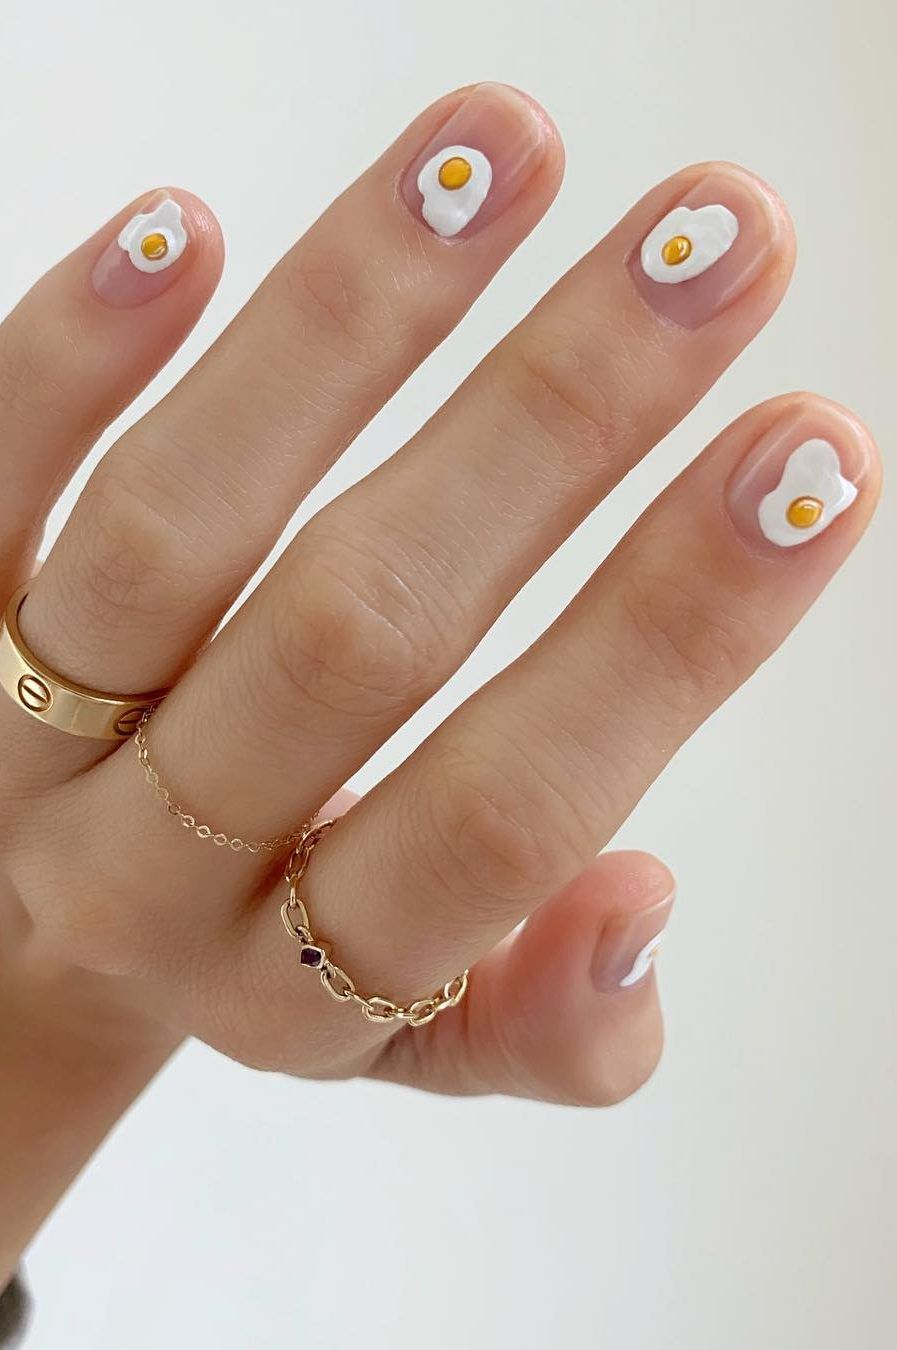 51 Great Spring Nail Art Ideas You Haven T Tried Yet 2020 Page